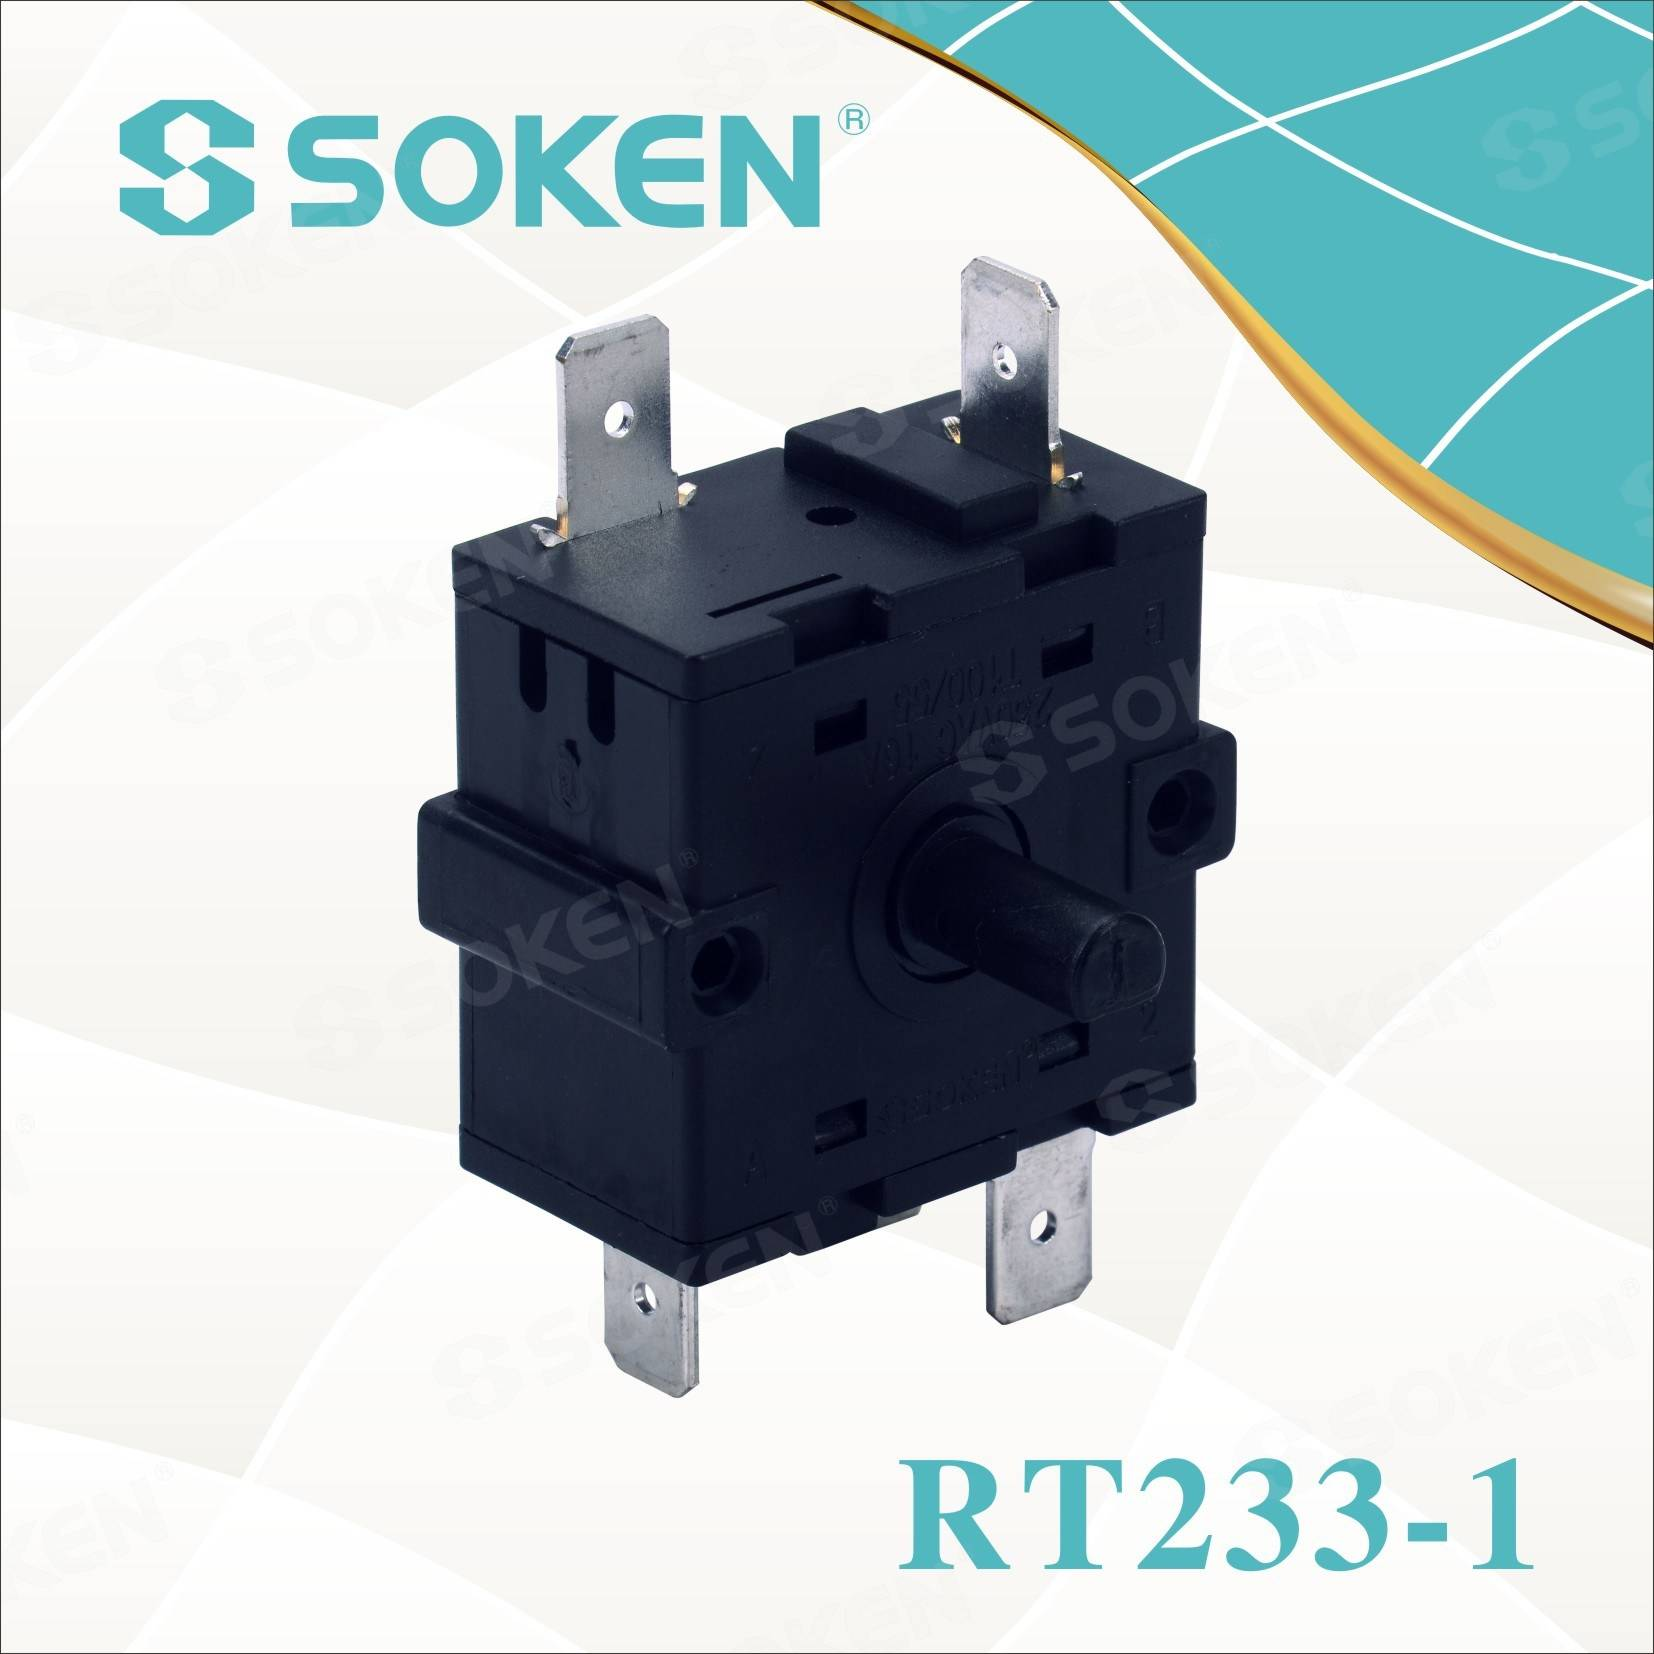 Personlized Products Thermoplastic Rocker Switch -